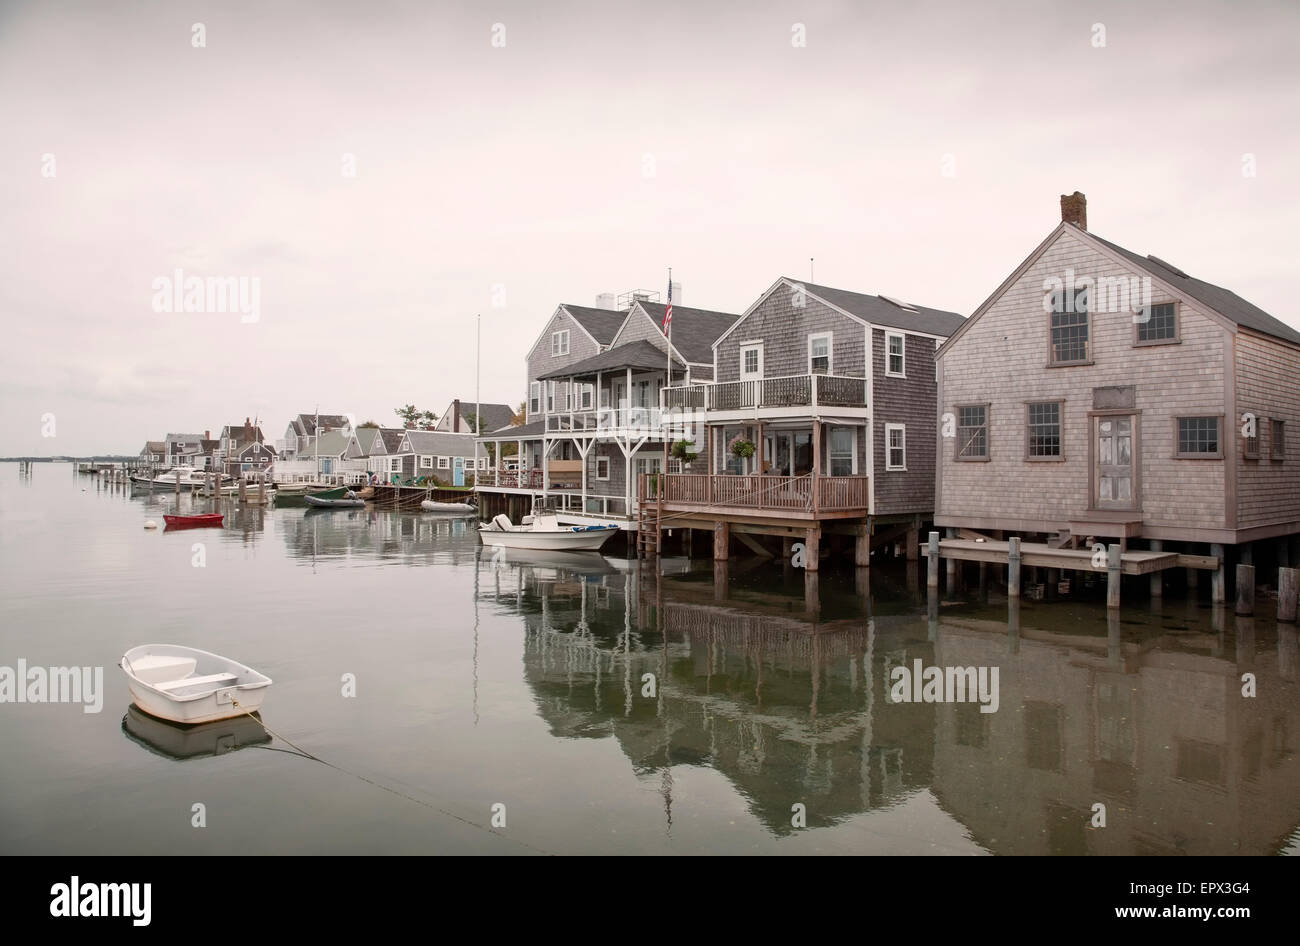 Estados Unidos, Massachusetts, Nantucket, Old North Wharf, botes y palafitos Imagen De Stock